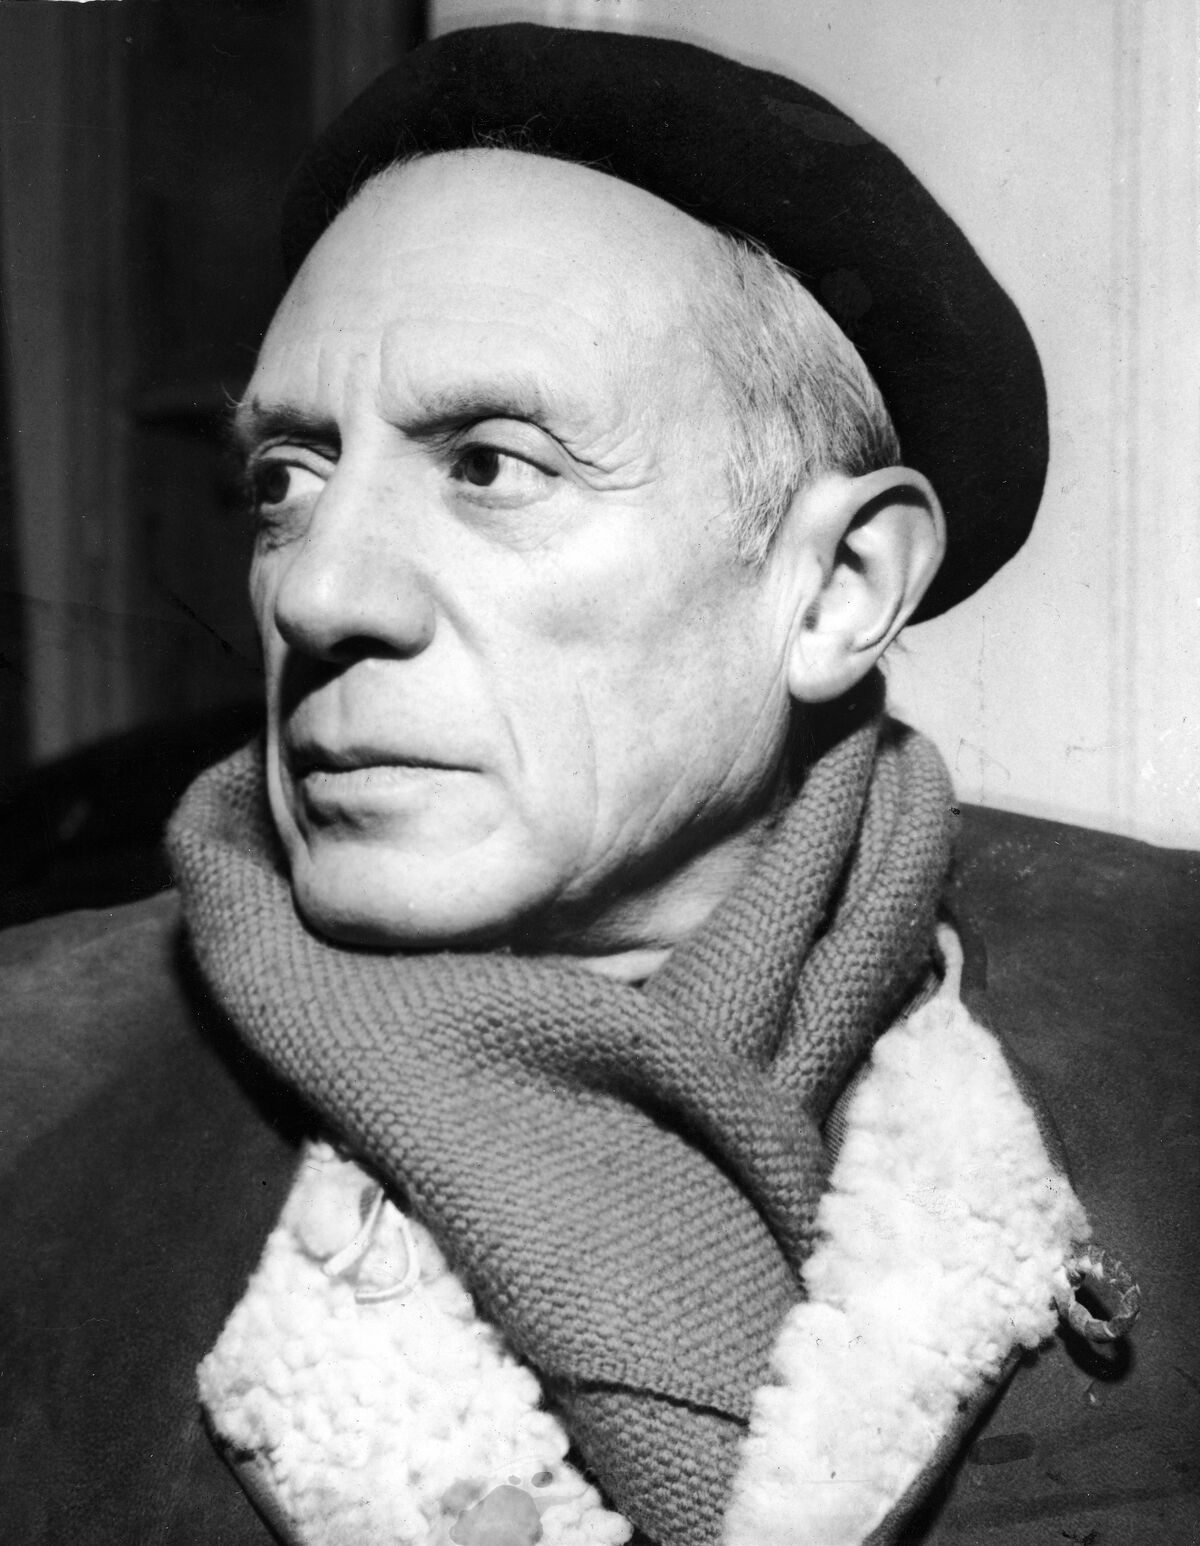 Portrait of Pablo Picasso in a winter coat, scarf, and beret, ca. 1950s. Photo by Hulton Archive/Getty Images.